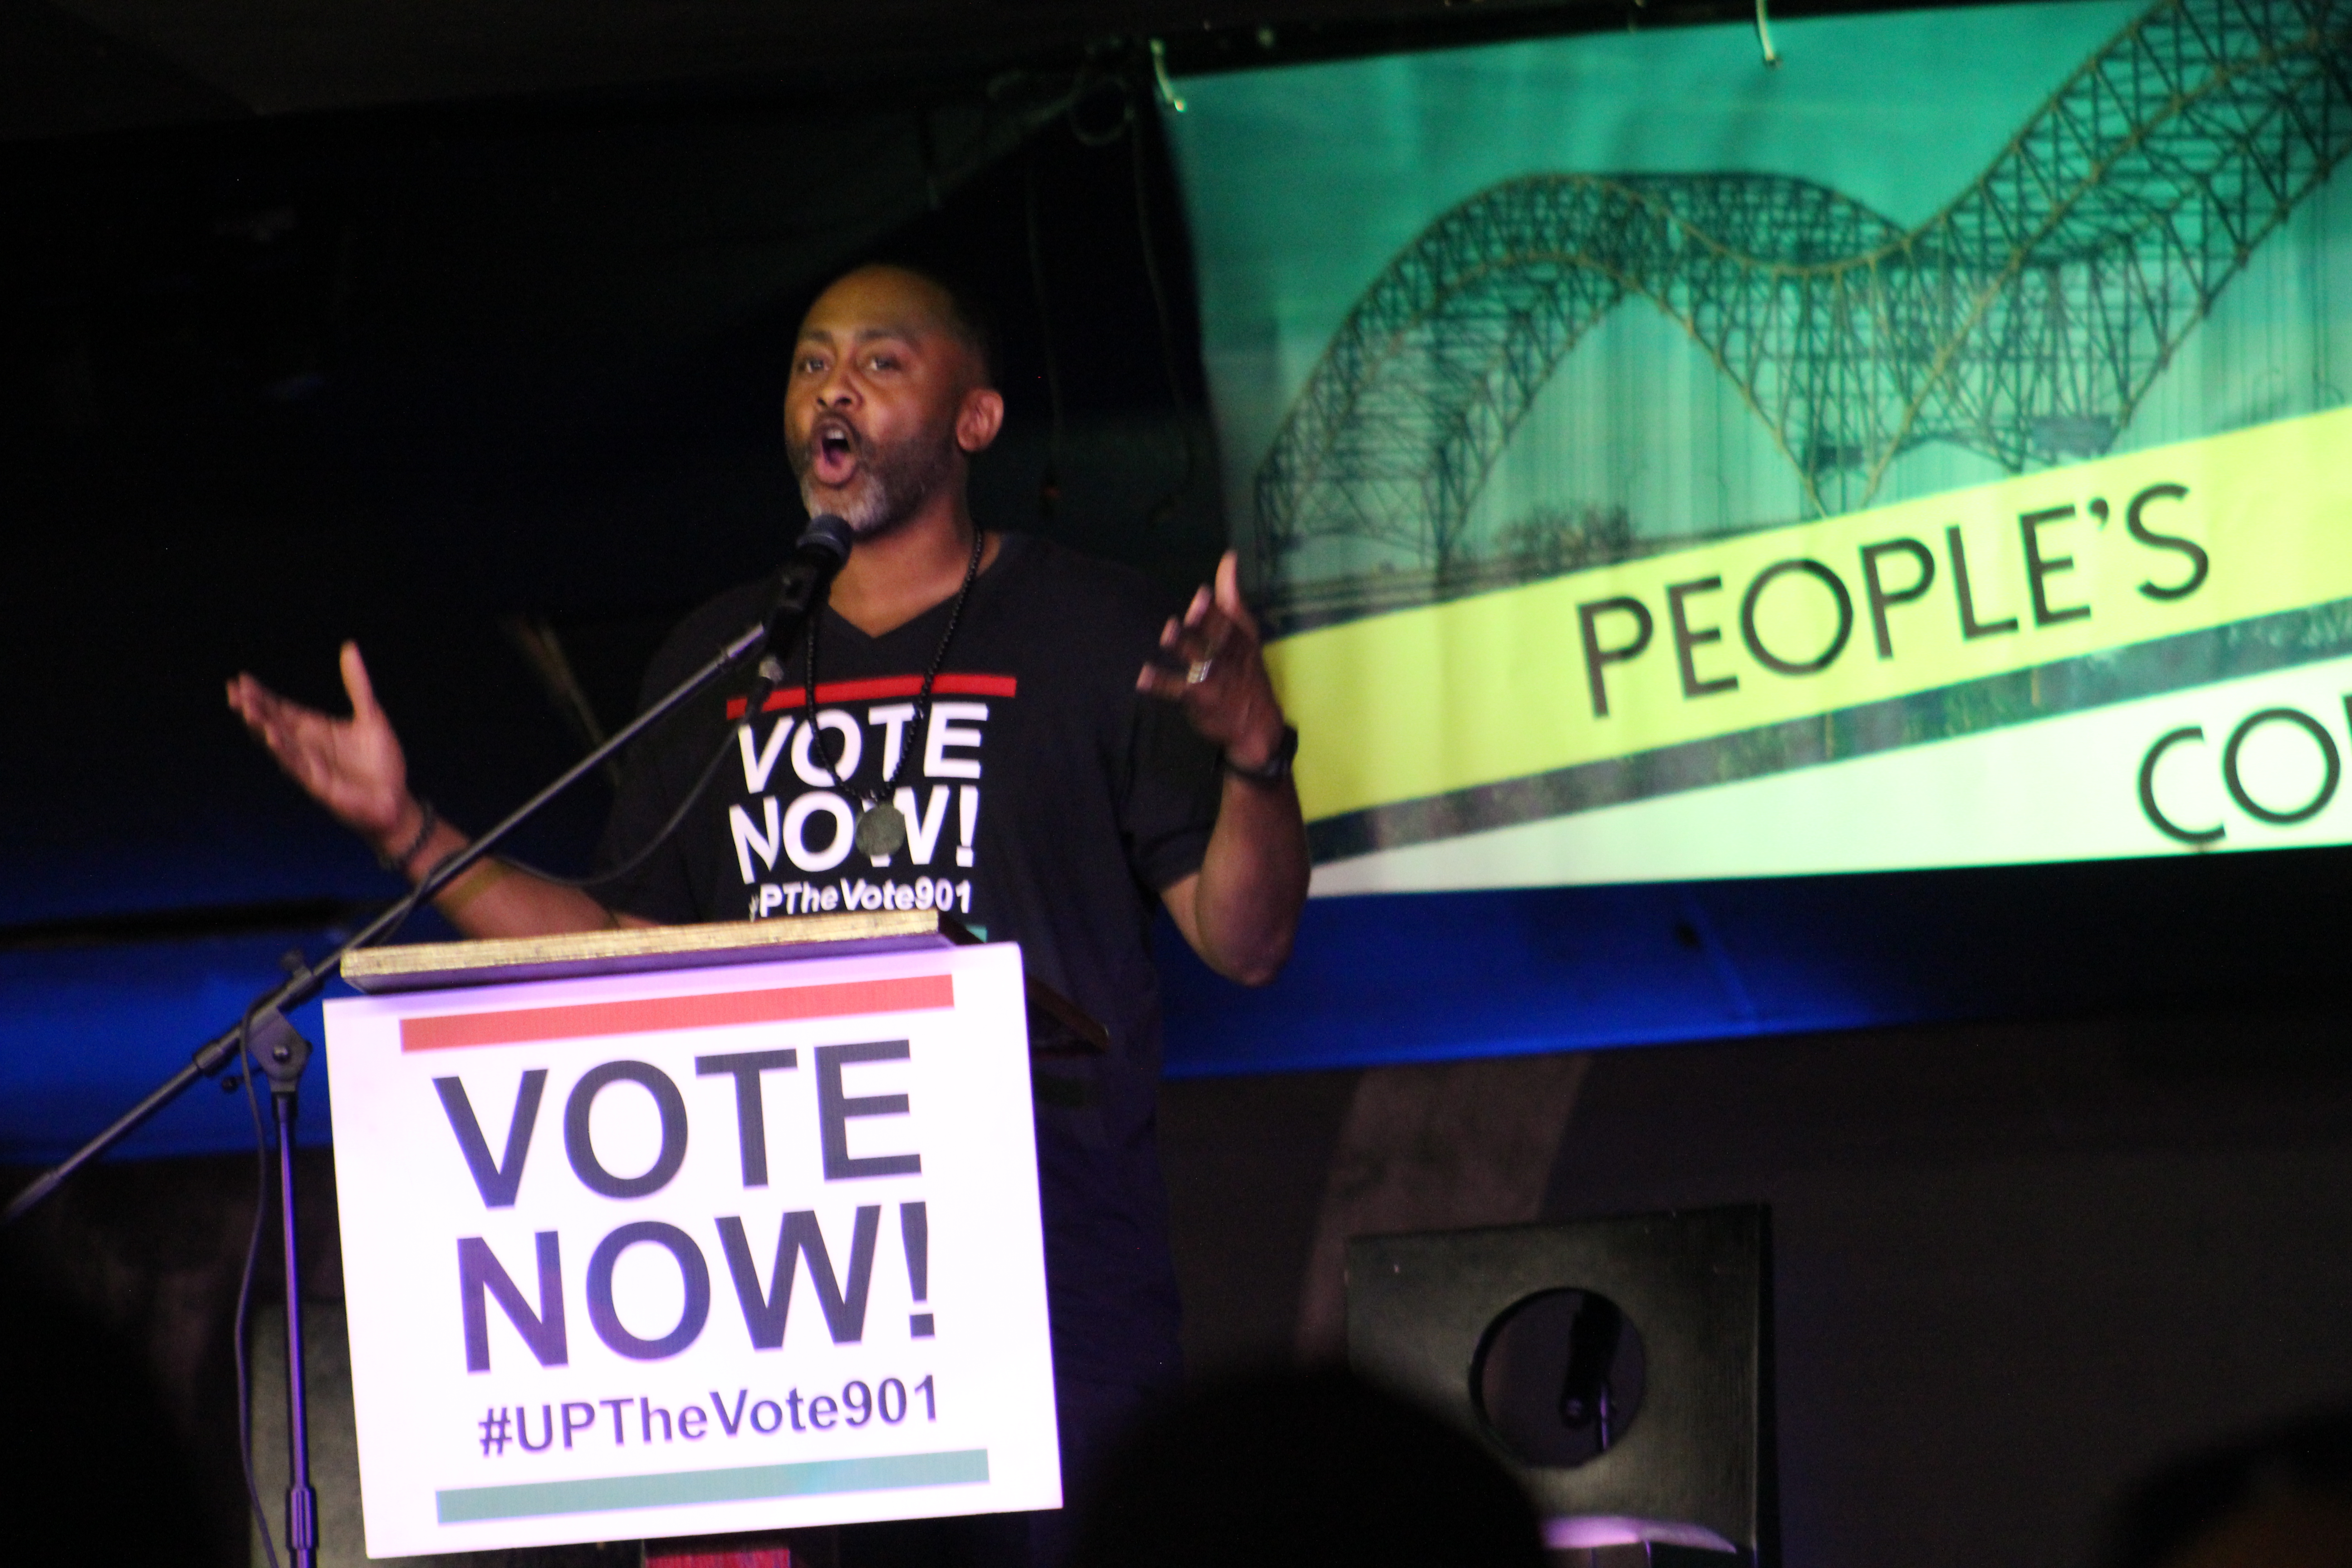 Rev. Dr. Earle Fisher, founder of #UPTheVote901, offers opening remarks at The People's Convention at the Paradise Entertainment Complex on Saturday, June 8. (Photo: Lee Eric Smith)